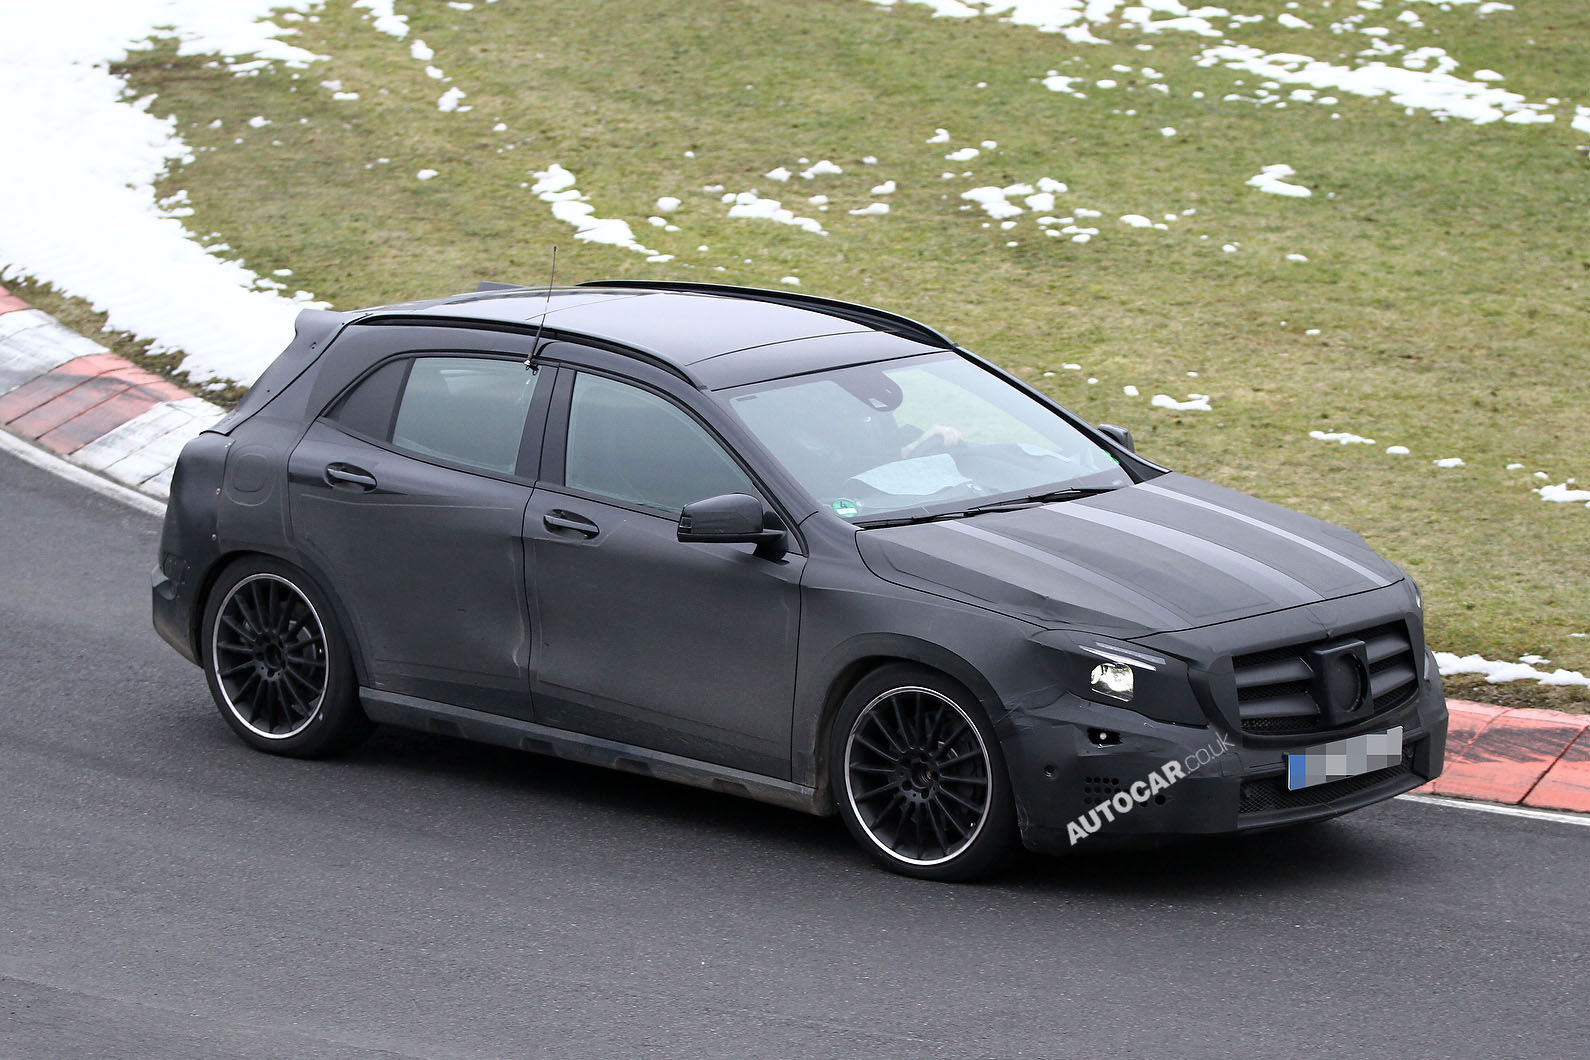 2014 Mercedes-Benz GLA Spied Testing on Video